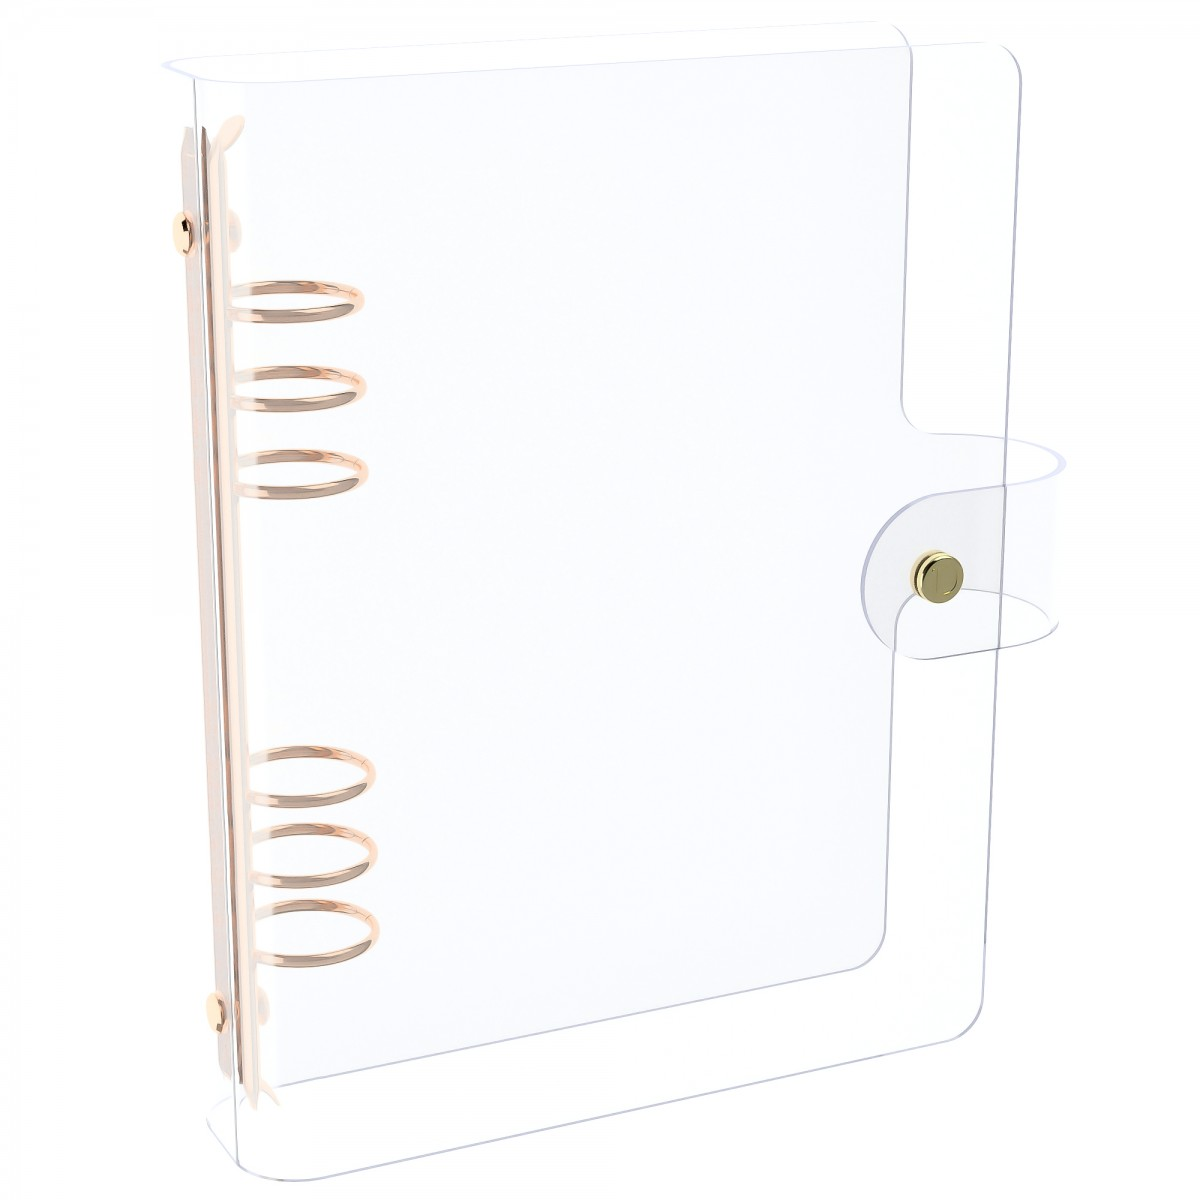 DISCAGENDA CLARITY CLEAR SEE THROUGH PVC PLANNER COVER - RINGBOUND, A5 SIZE, ROSE GOLD